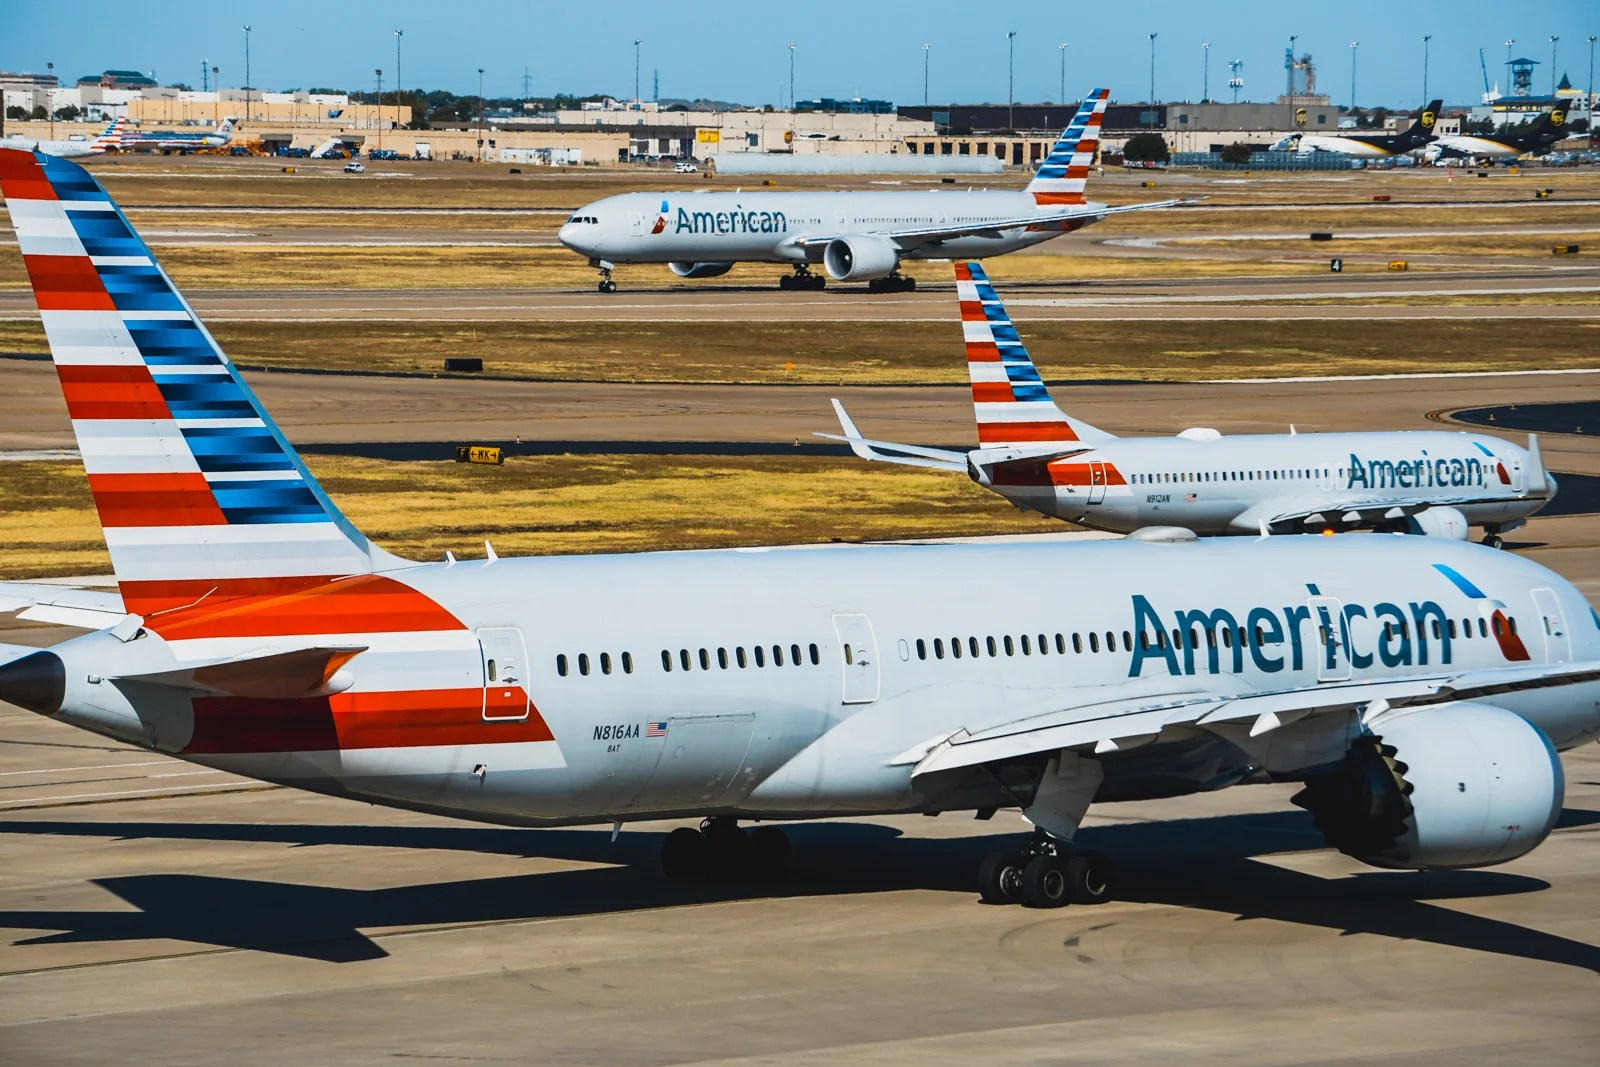 Widespread American Airlines awards available for just 5,000 miles each way